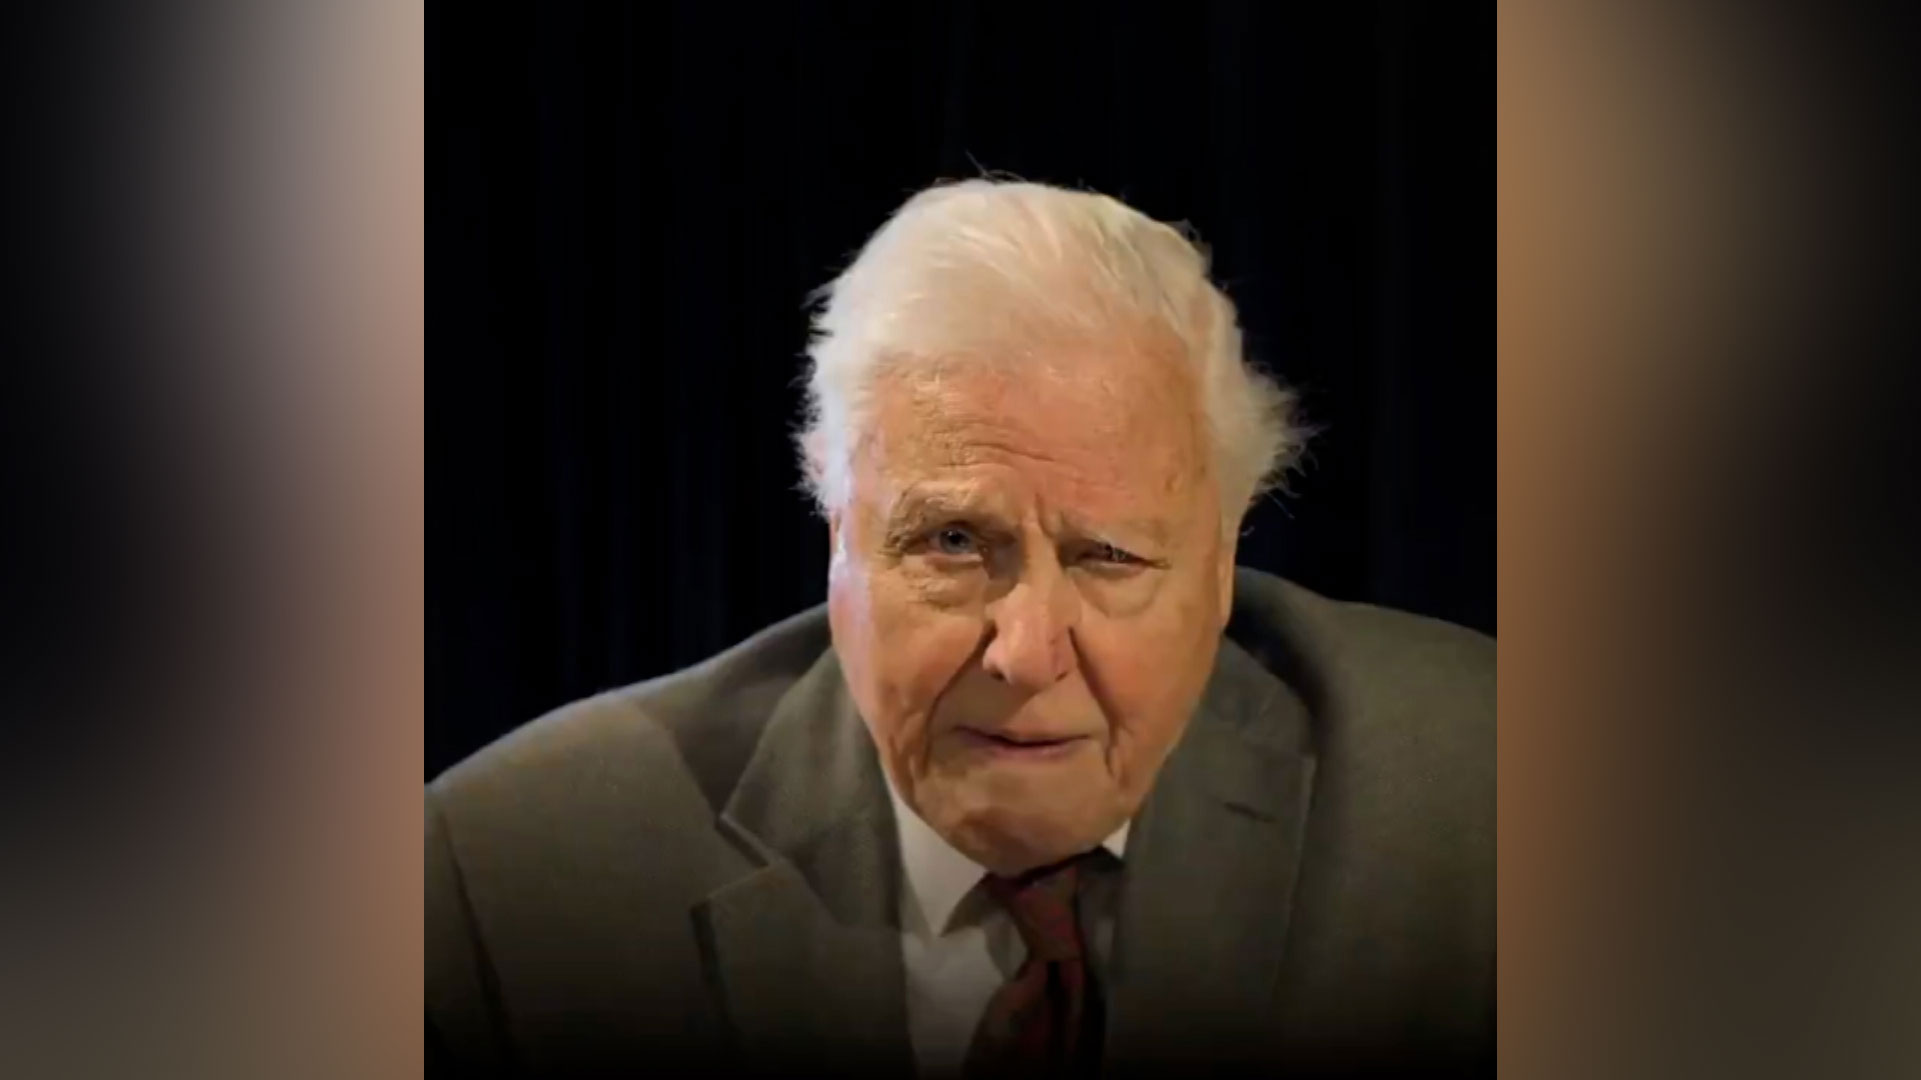 David Attenborough speaks via video to leaders at the G7 summit about tackling climate change.